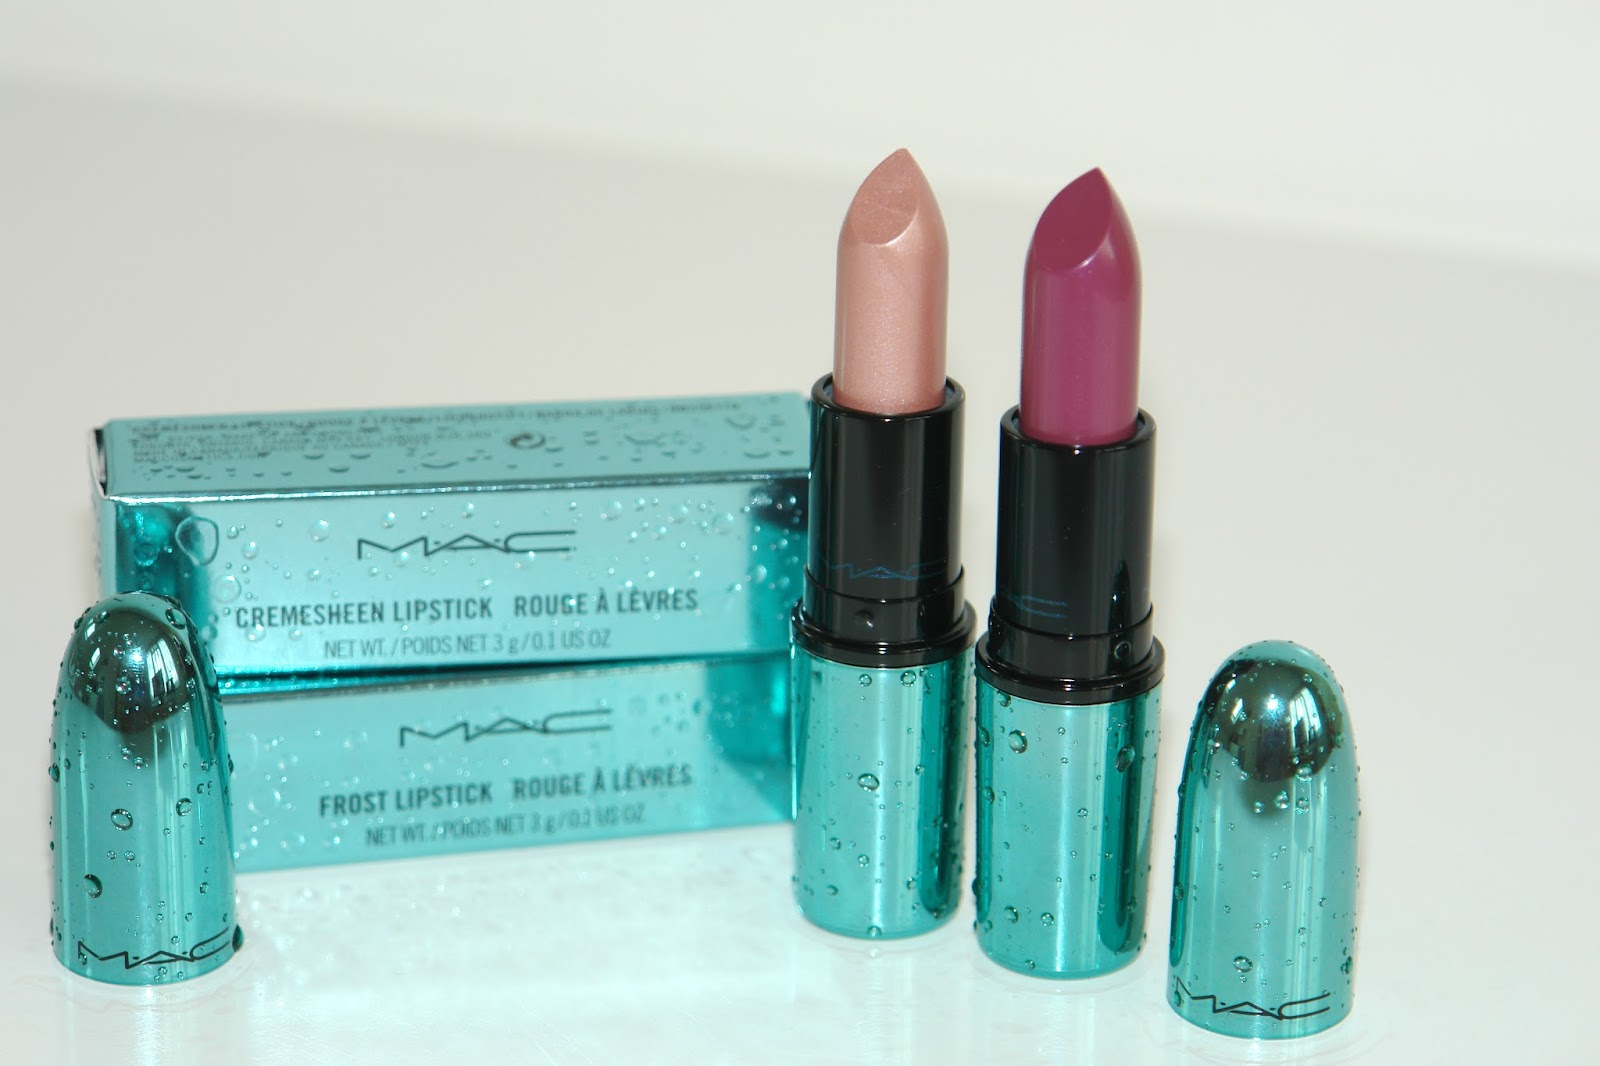 My MAC Alluring Aquatic collection: Pet Me, Please and Goddess of the Sea, MAC, lipstick, make up, review, beauty, Alluring Aquatic, limited edition, swatches, Aqua, MAC, collection, Pet Me, Please, Goddess of the Sea,